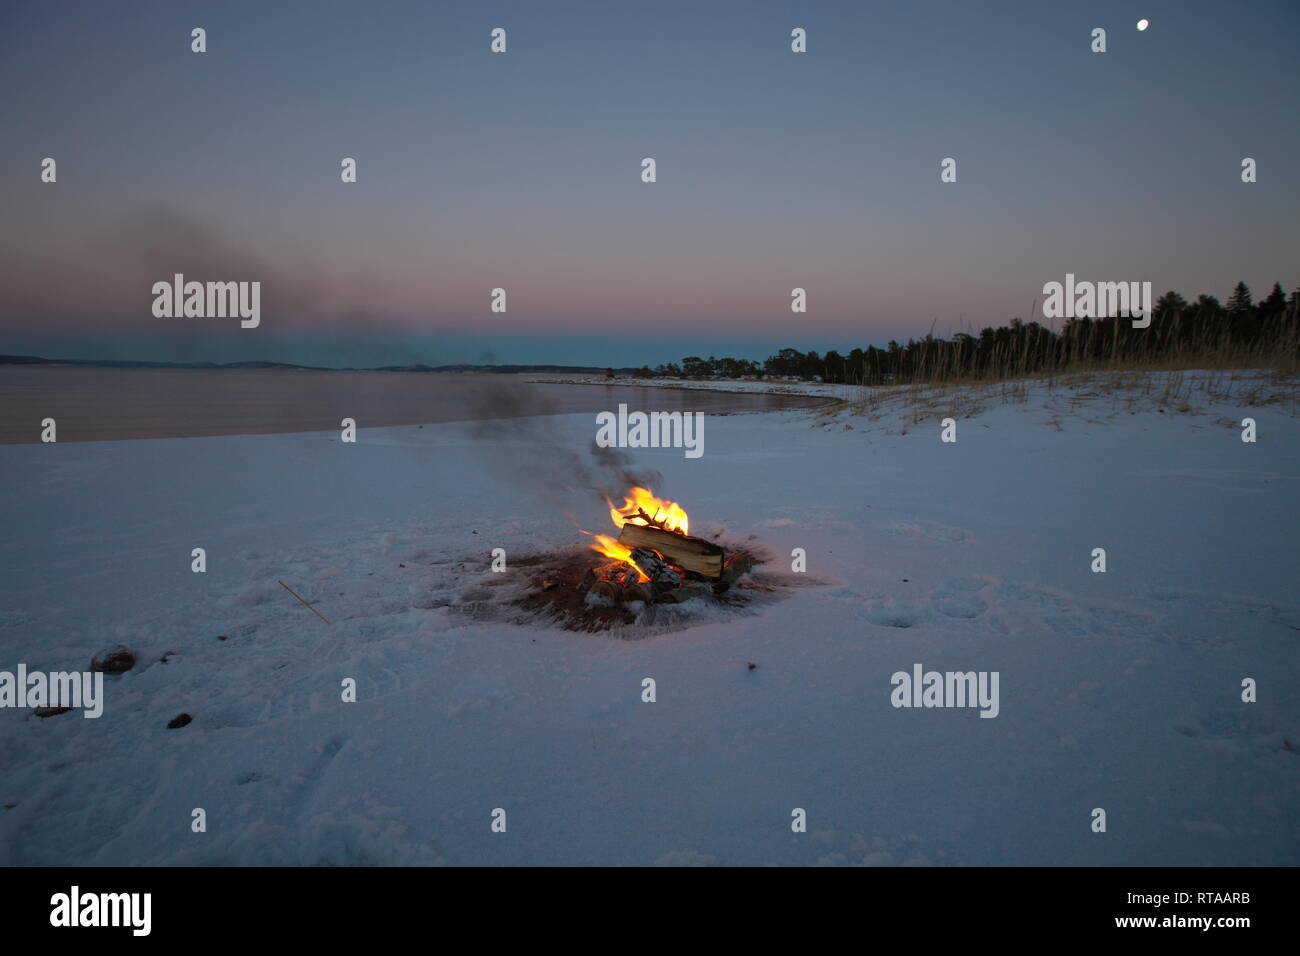 A camp fire is burning at the shore of a bay of the Baltic Sea. It's sunset on a winter day and the beach is covered in snow. Stock Photo